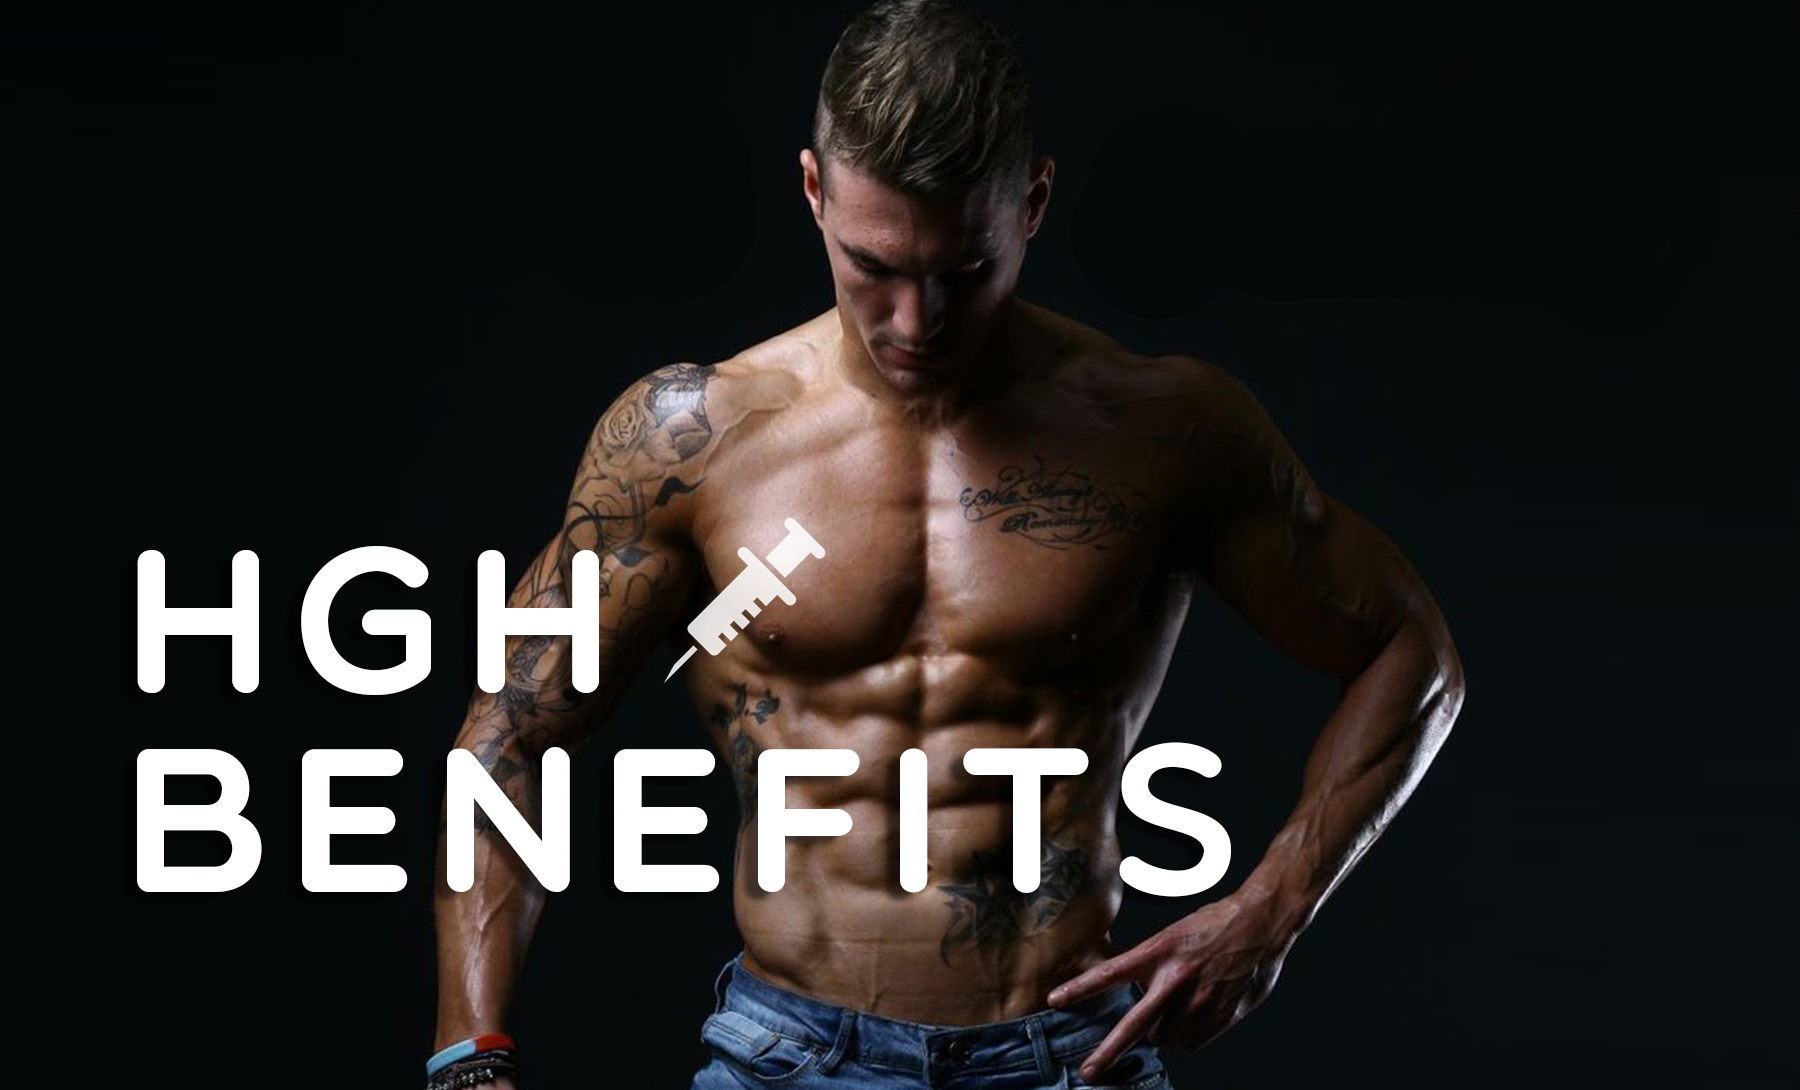 Hgh Benefits What Are Positive Effects Of Growth Hormone Therapy